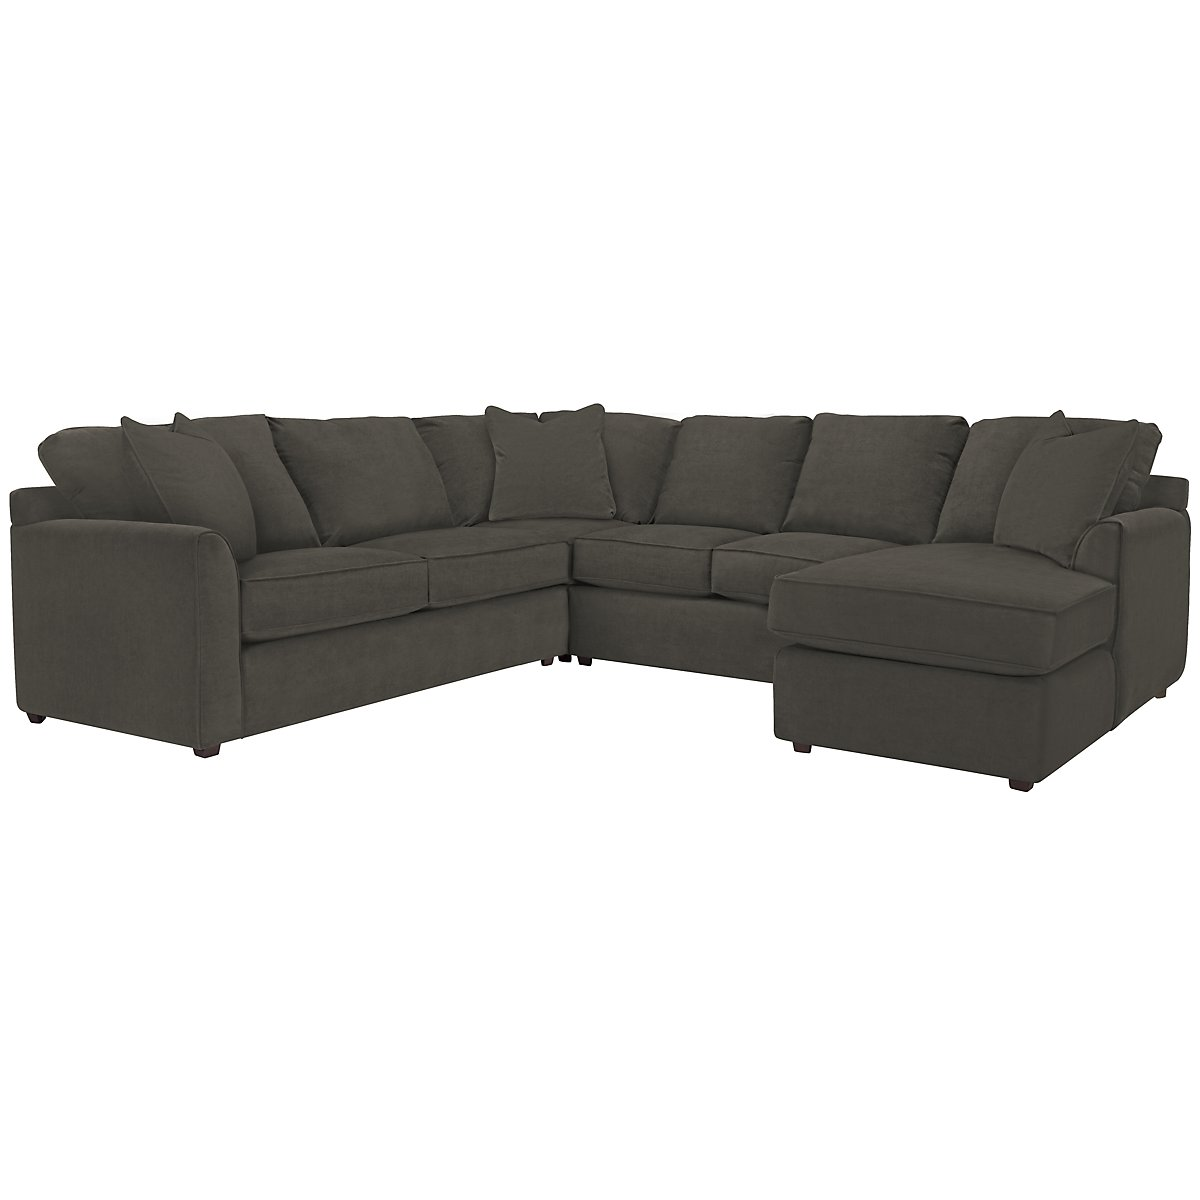 Express3 Dark Gray Microfiber Small Right Chaise Sectional